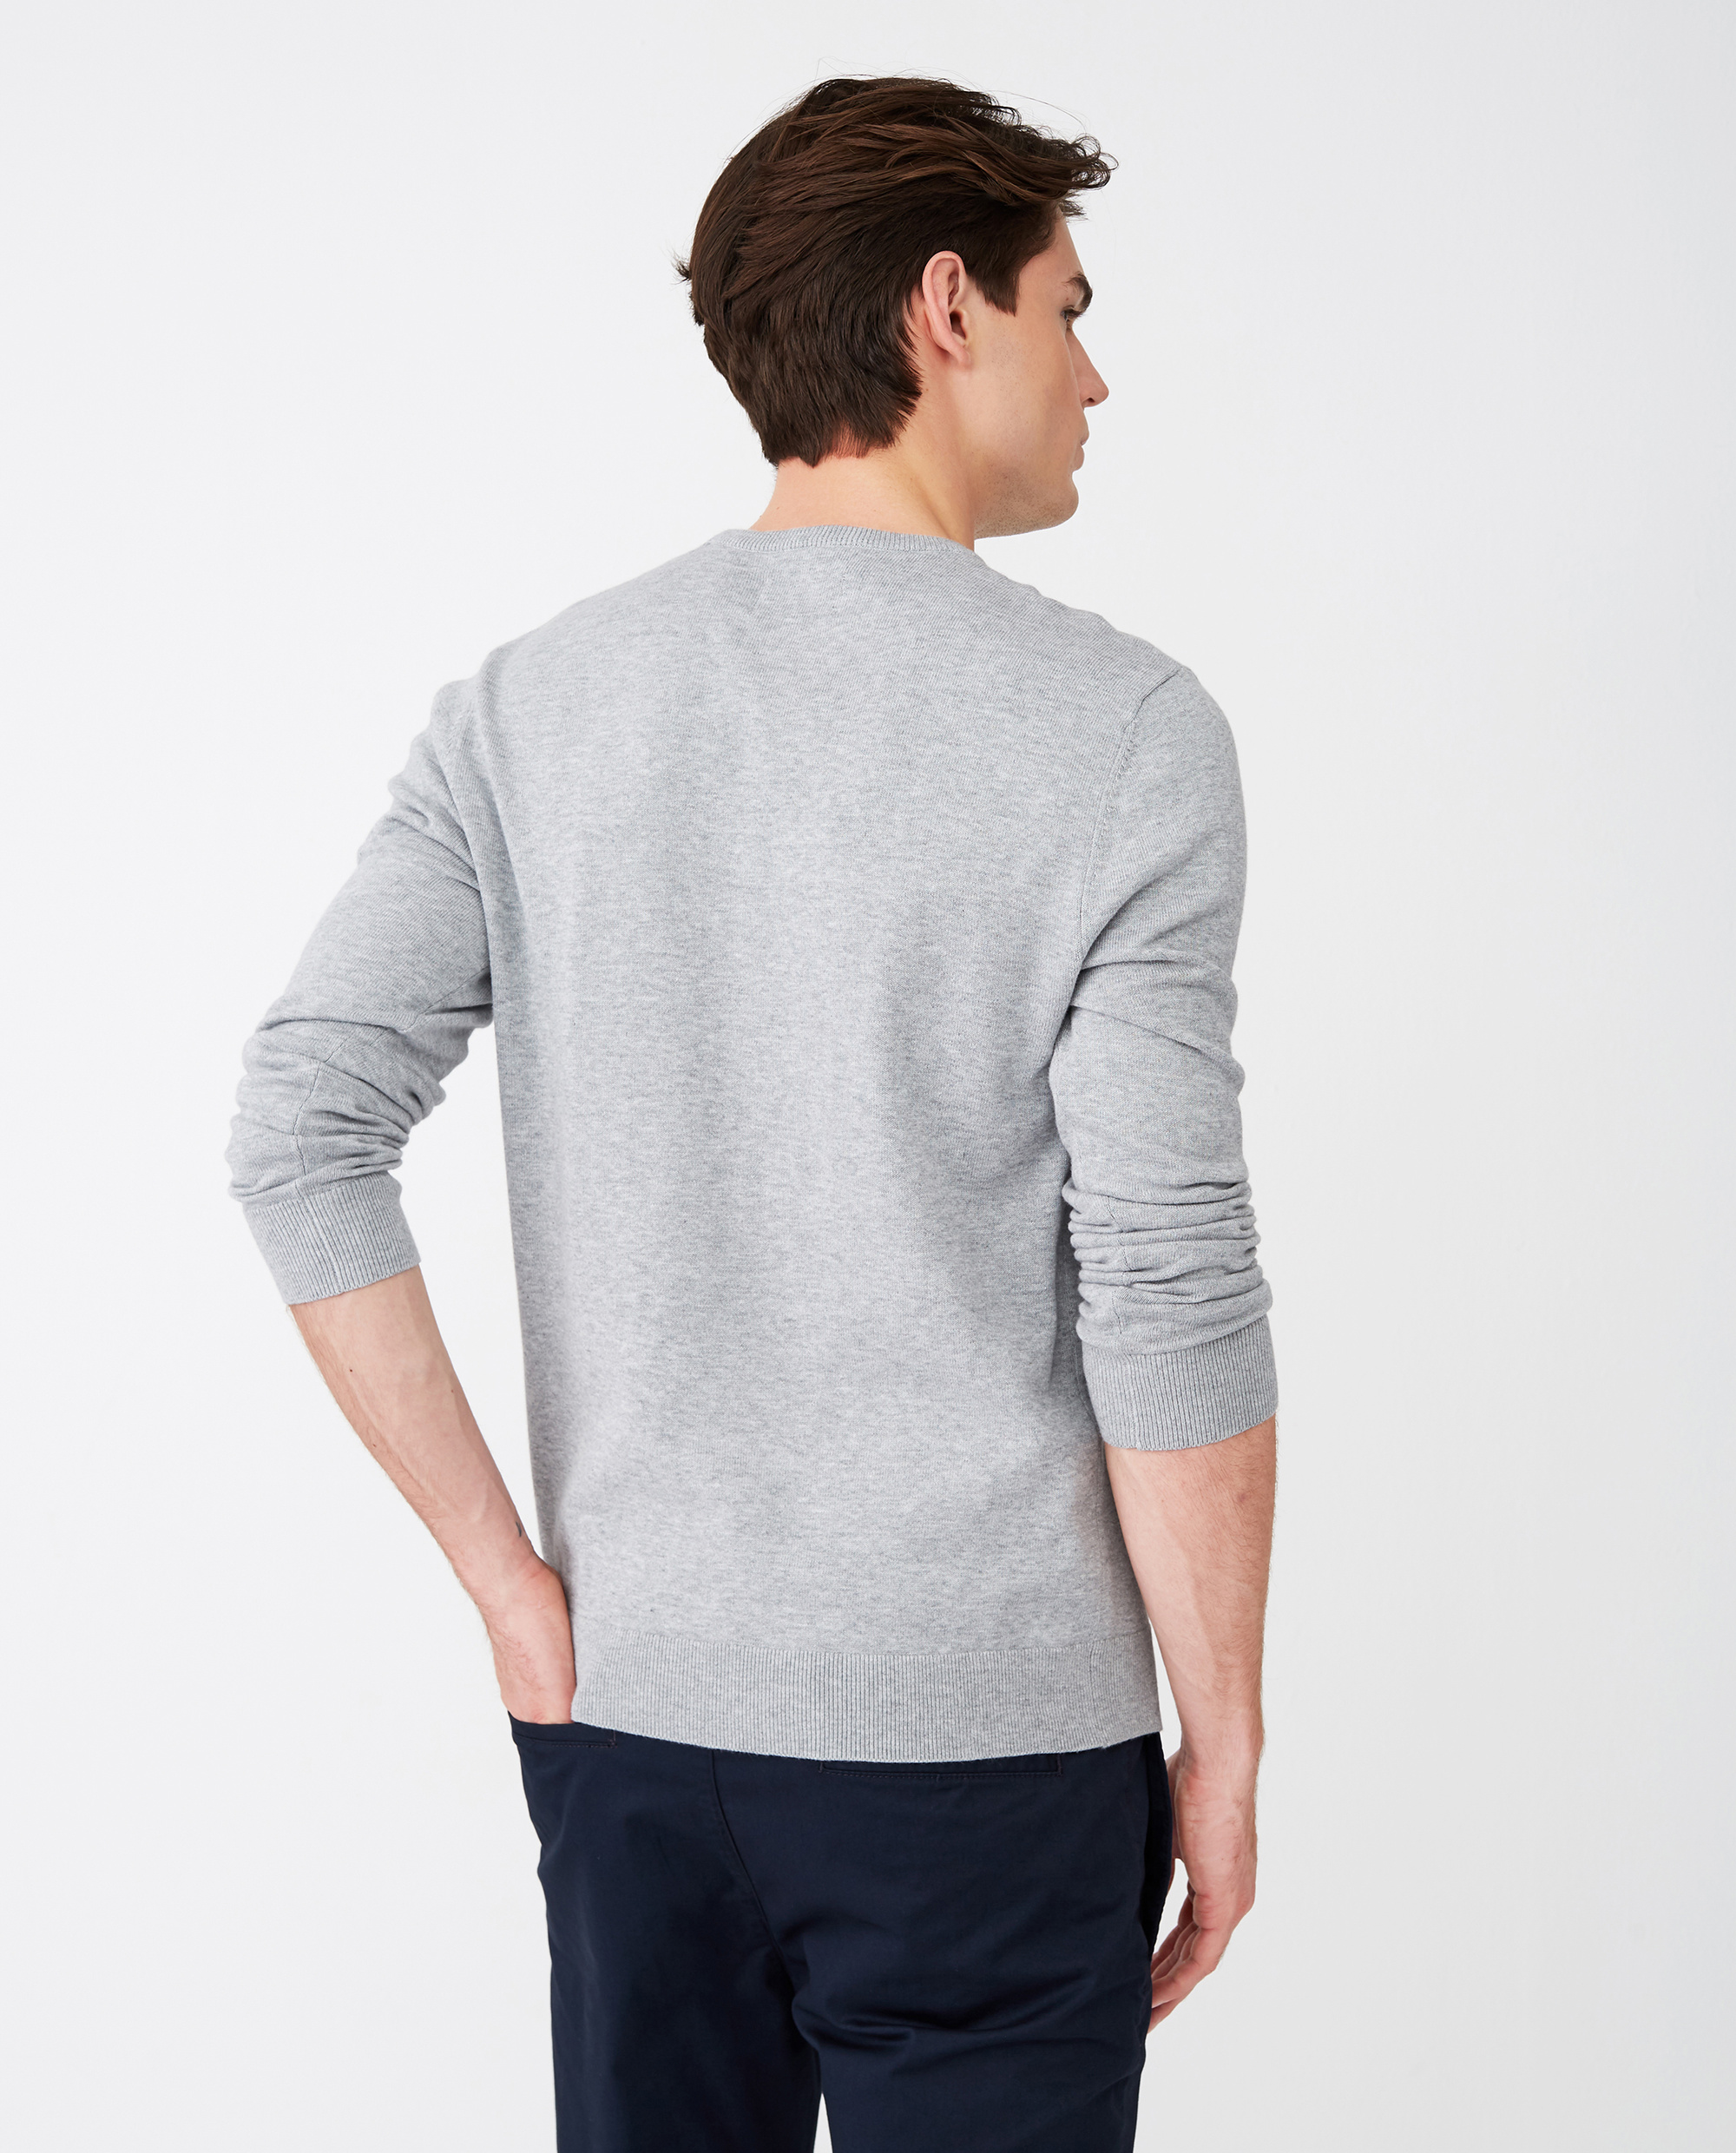 Bradley Organic Cotton Crew Neck Sweater, Gray Melange